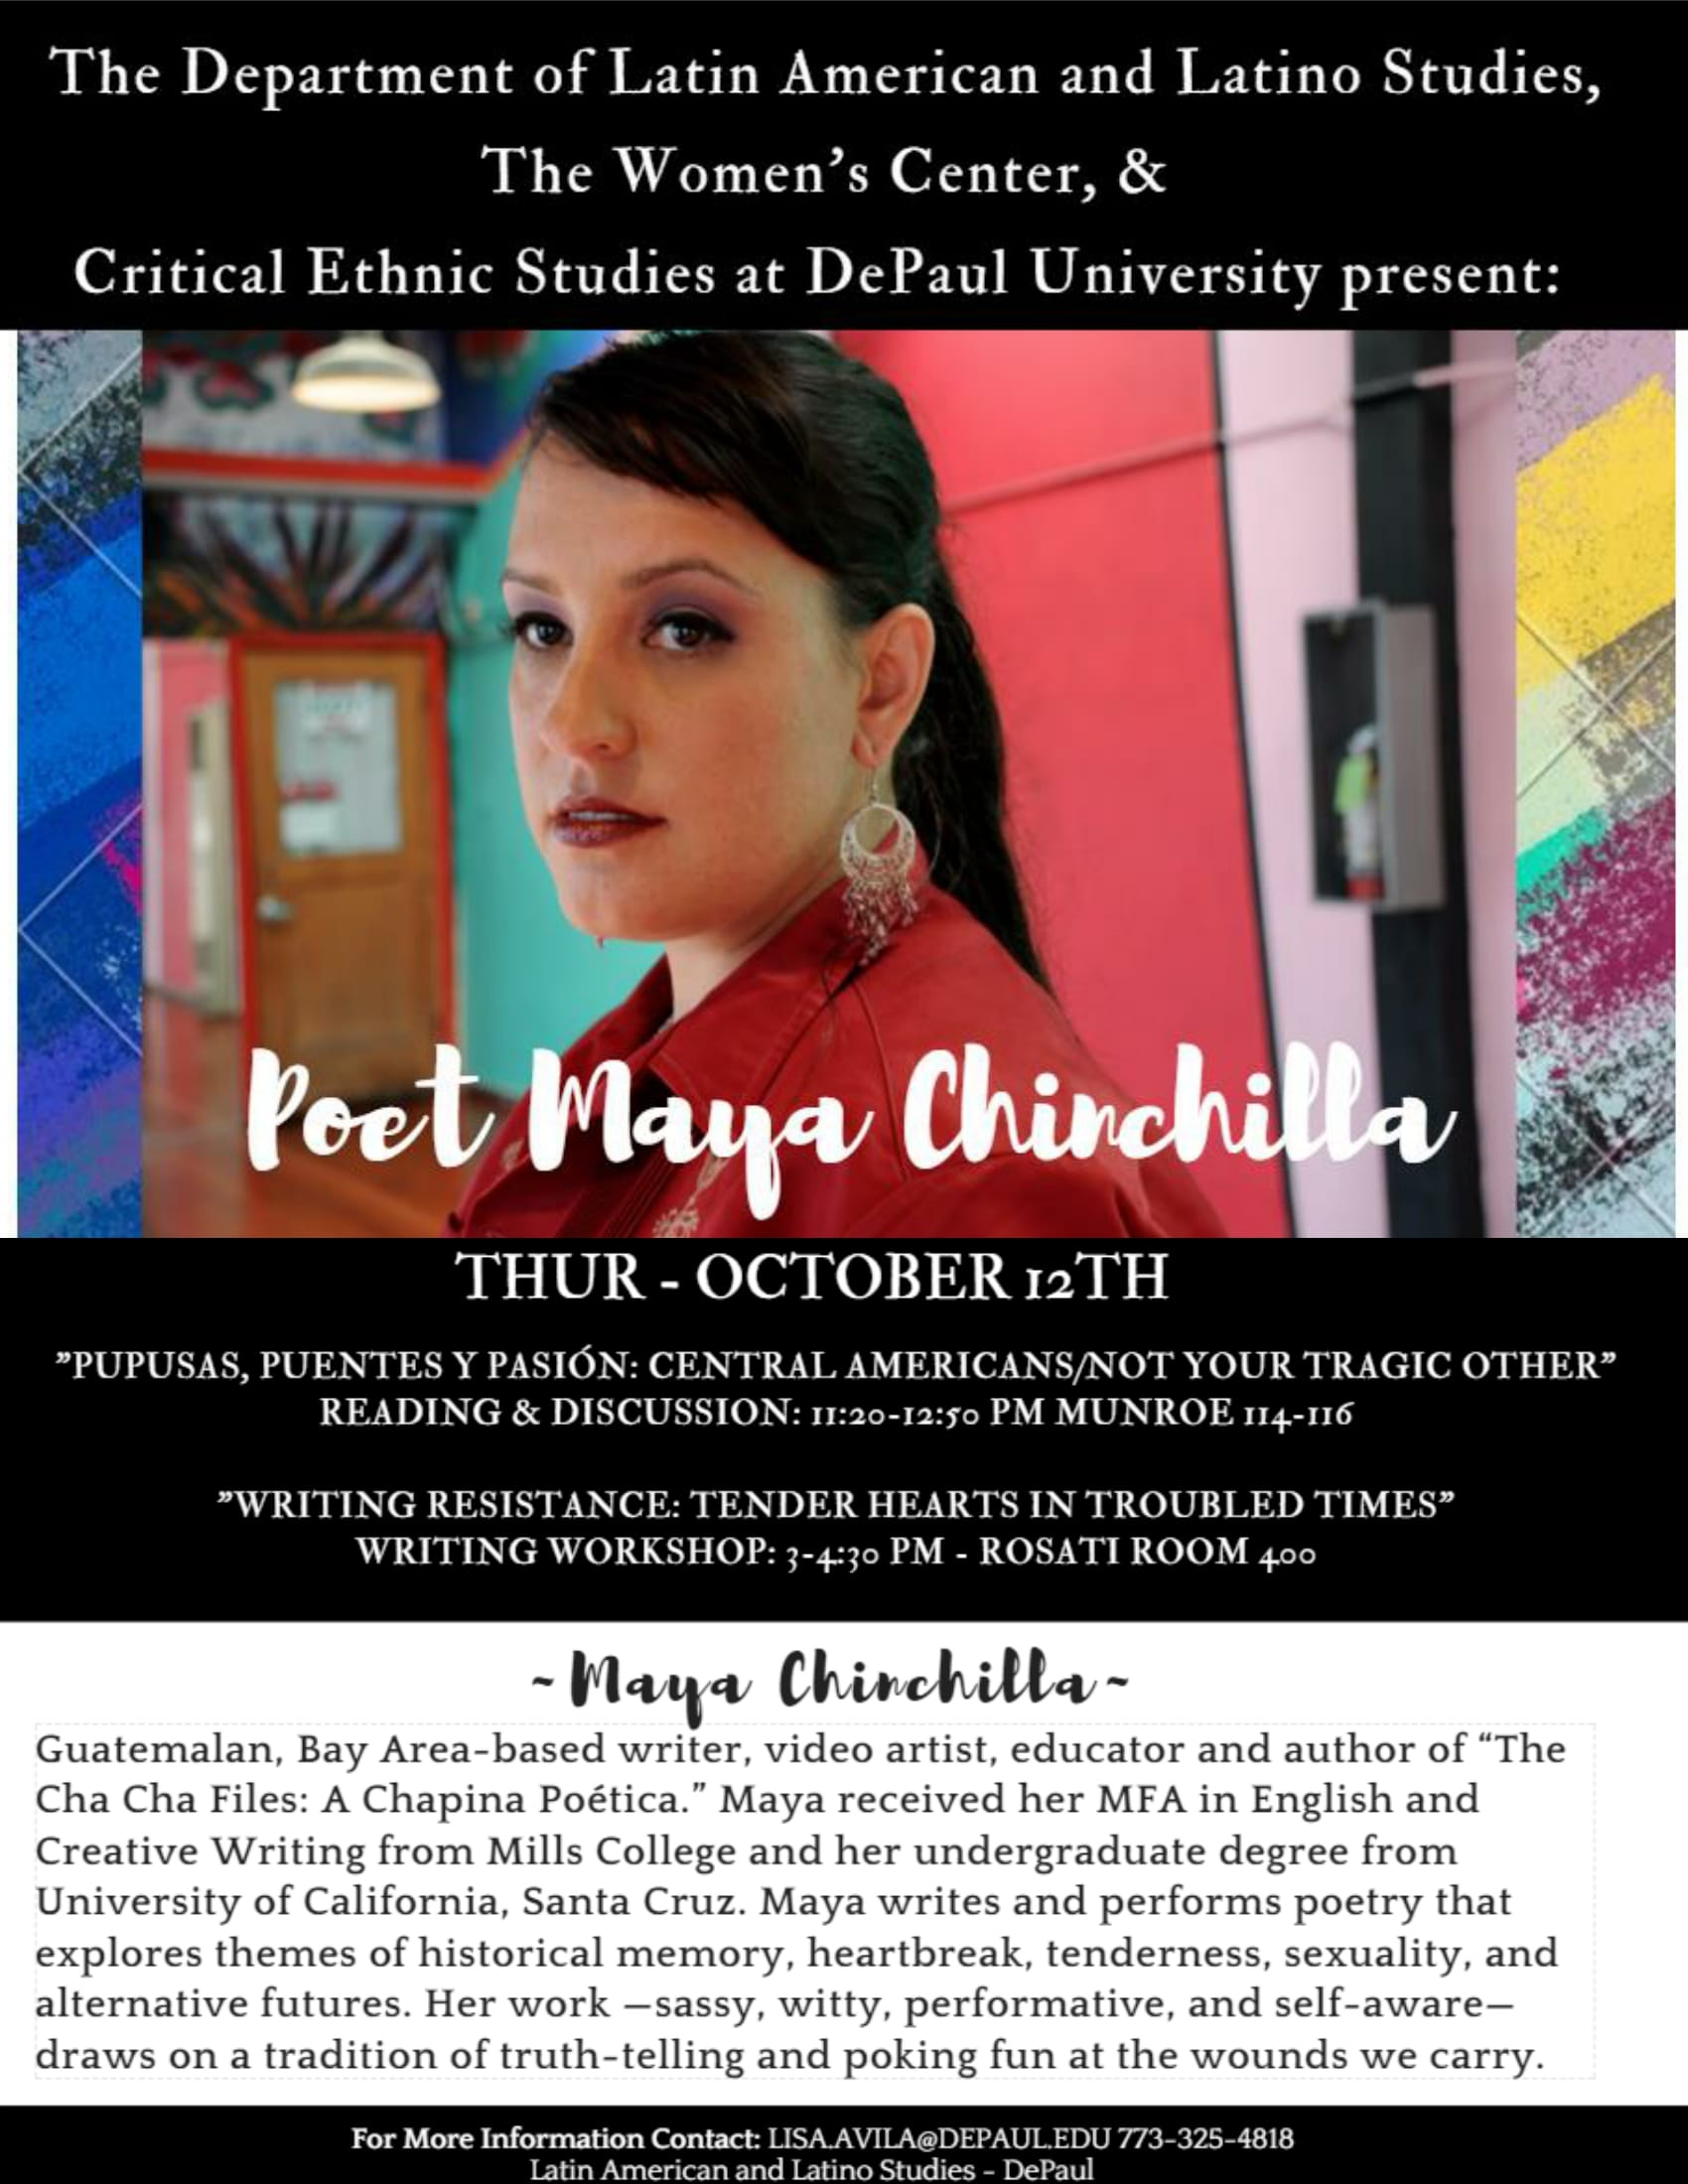 Poet Maya Chinchilla reading, discussion, and workshop at DePaul